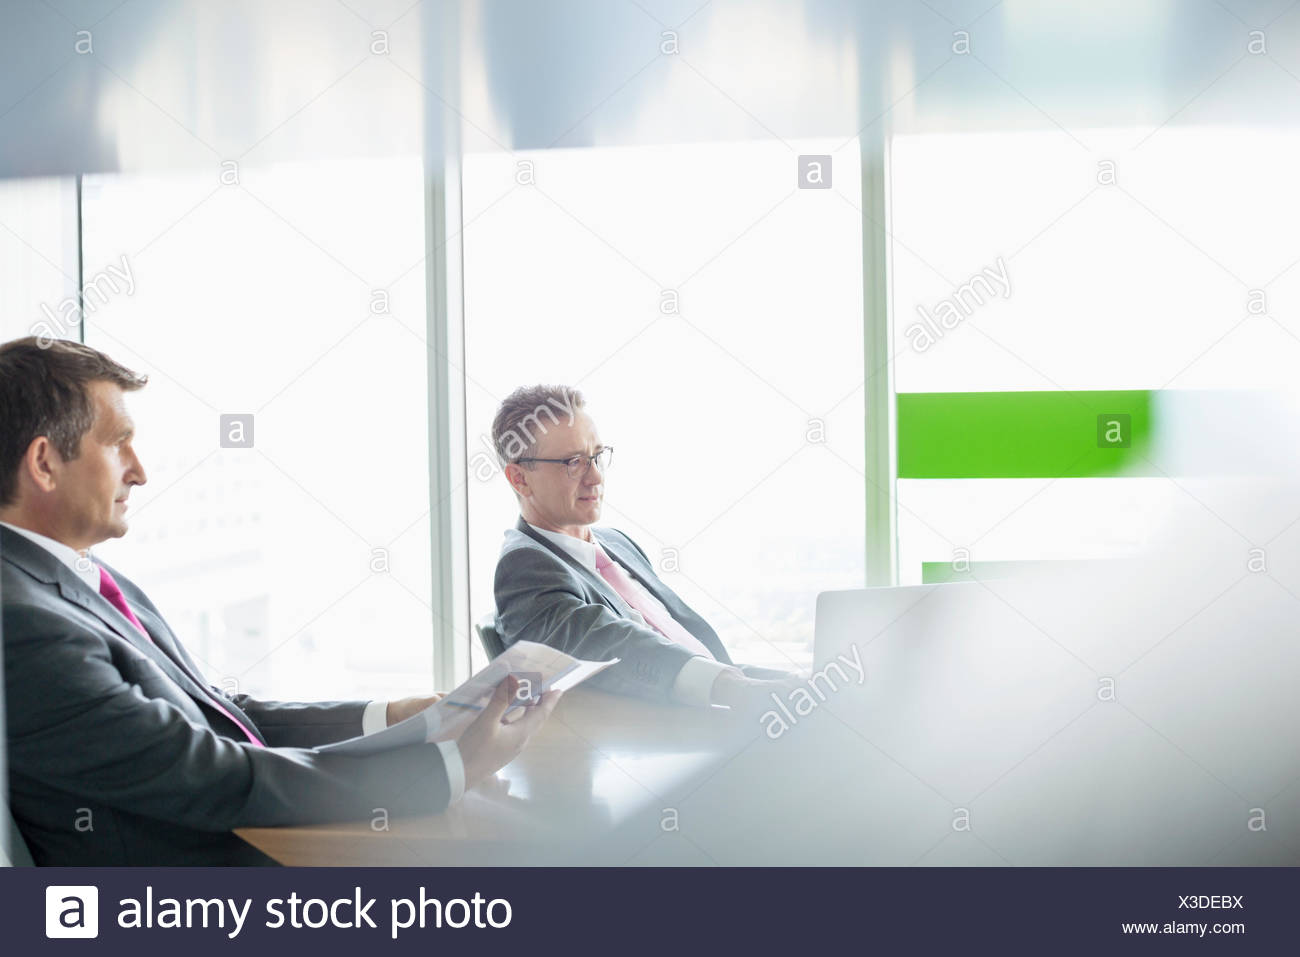 Businessmen working in office - Stock Image